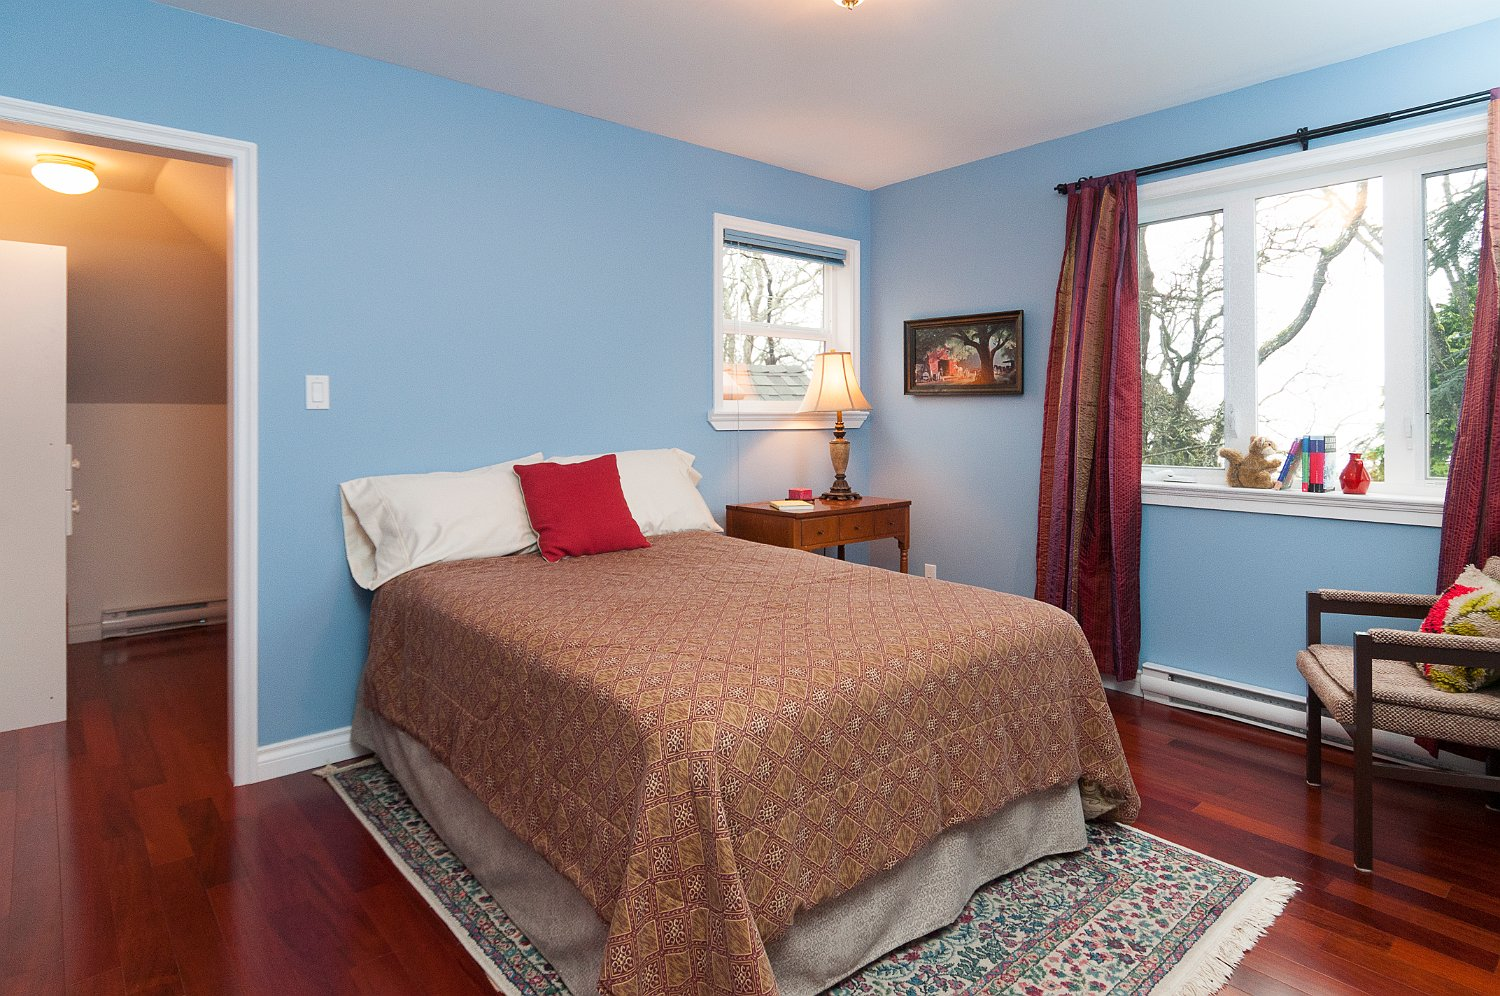 blue bedroom_9508